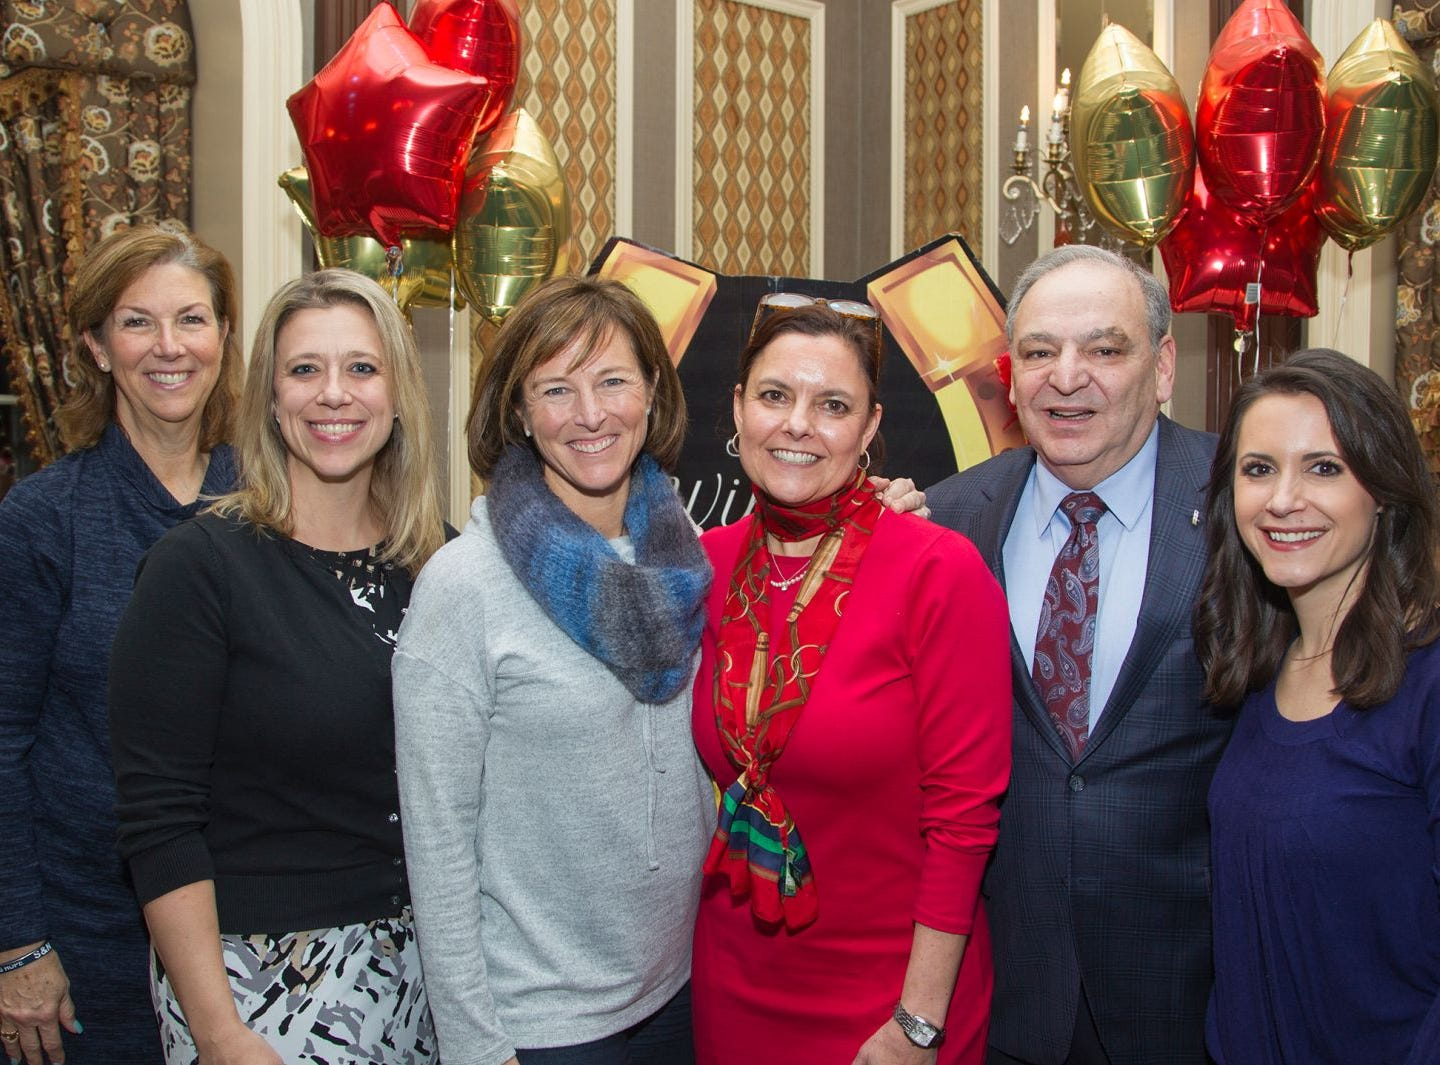 Board of Directors Community Representative Deb Duffy, Director of Education Jessica Egger, President Susan Buchanan, Executive Director  Jennifer Brady, Treasurer Alfonso Daloisio, Jr, Joanna Gagis. Executive Producer & VP of Programming A Night at the Races hosted by OASIS at the Brownstone in Paterson. 2/7/2019